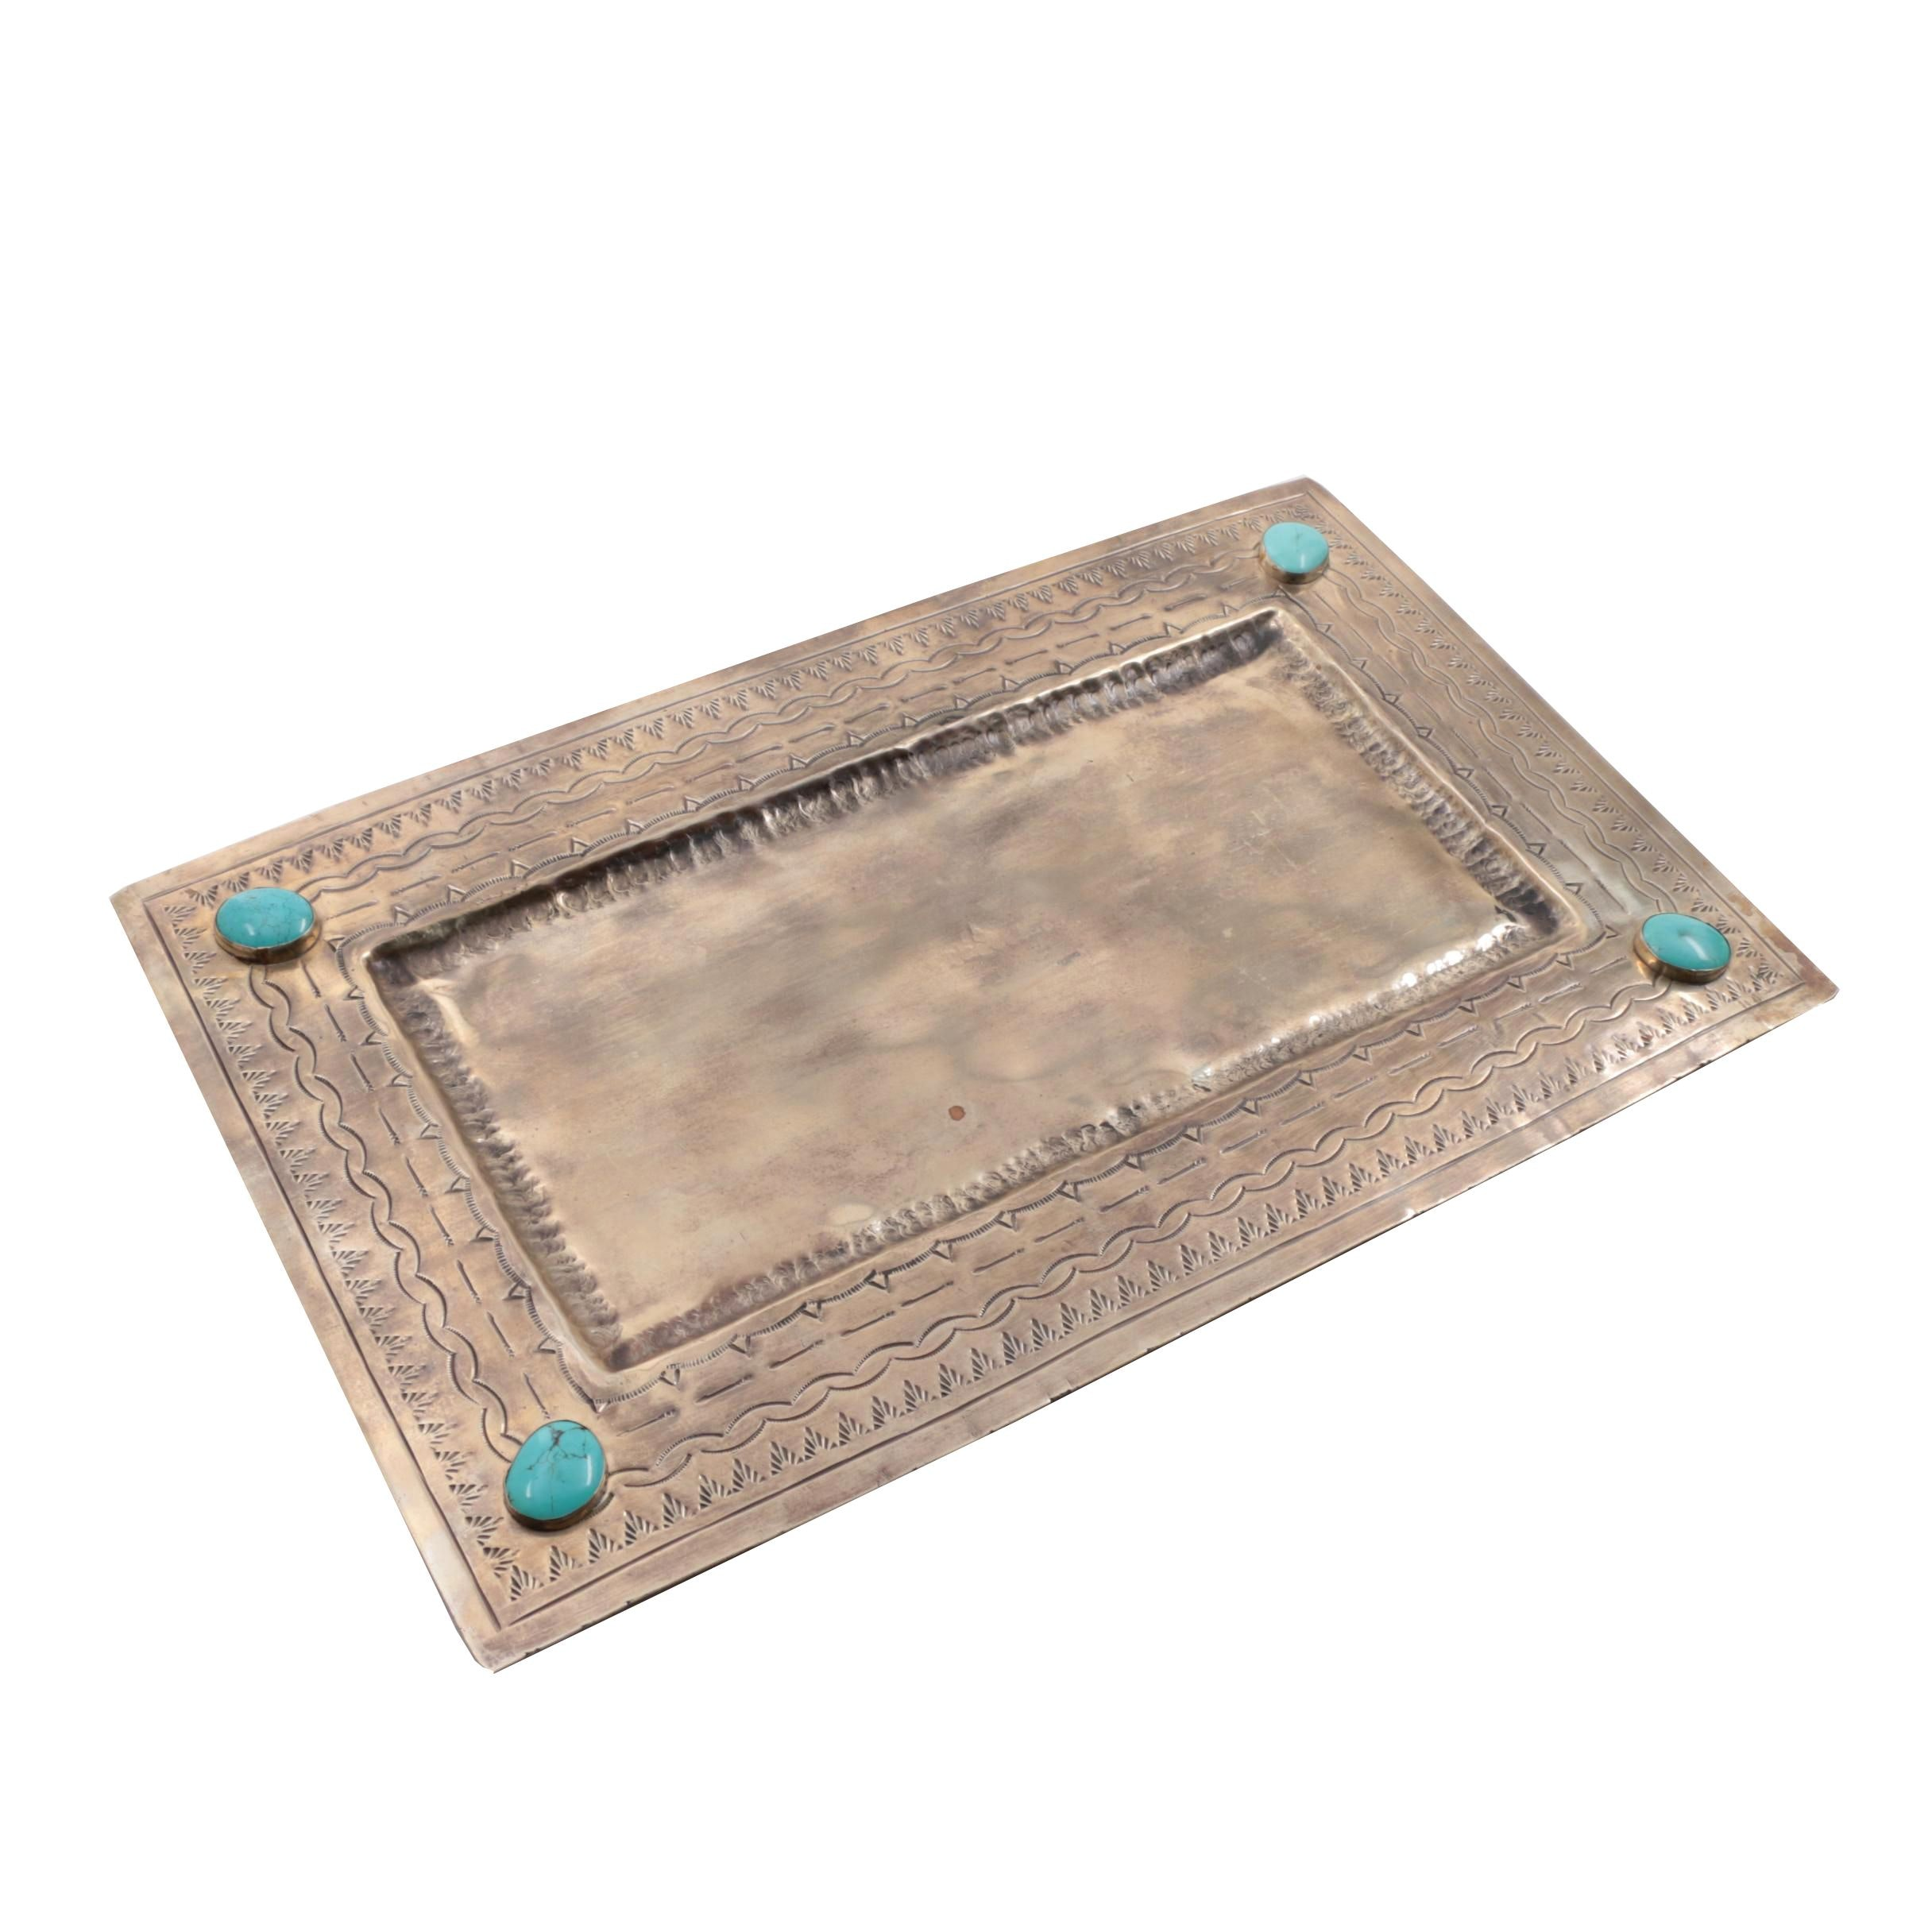 J. Alexander Handcrafted Silver Tone Tray with Reconstituted Turquoise Cabochons